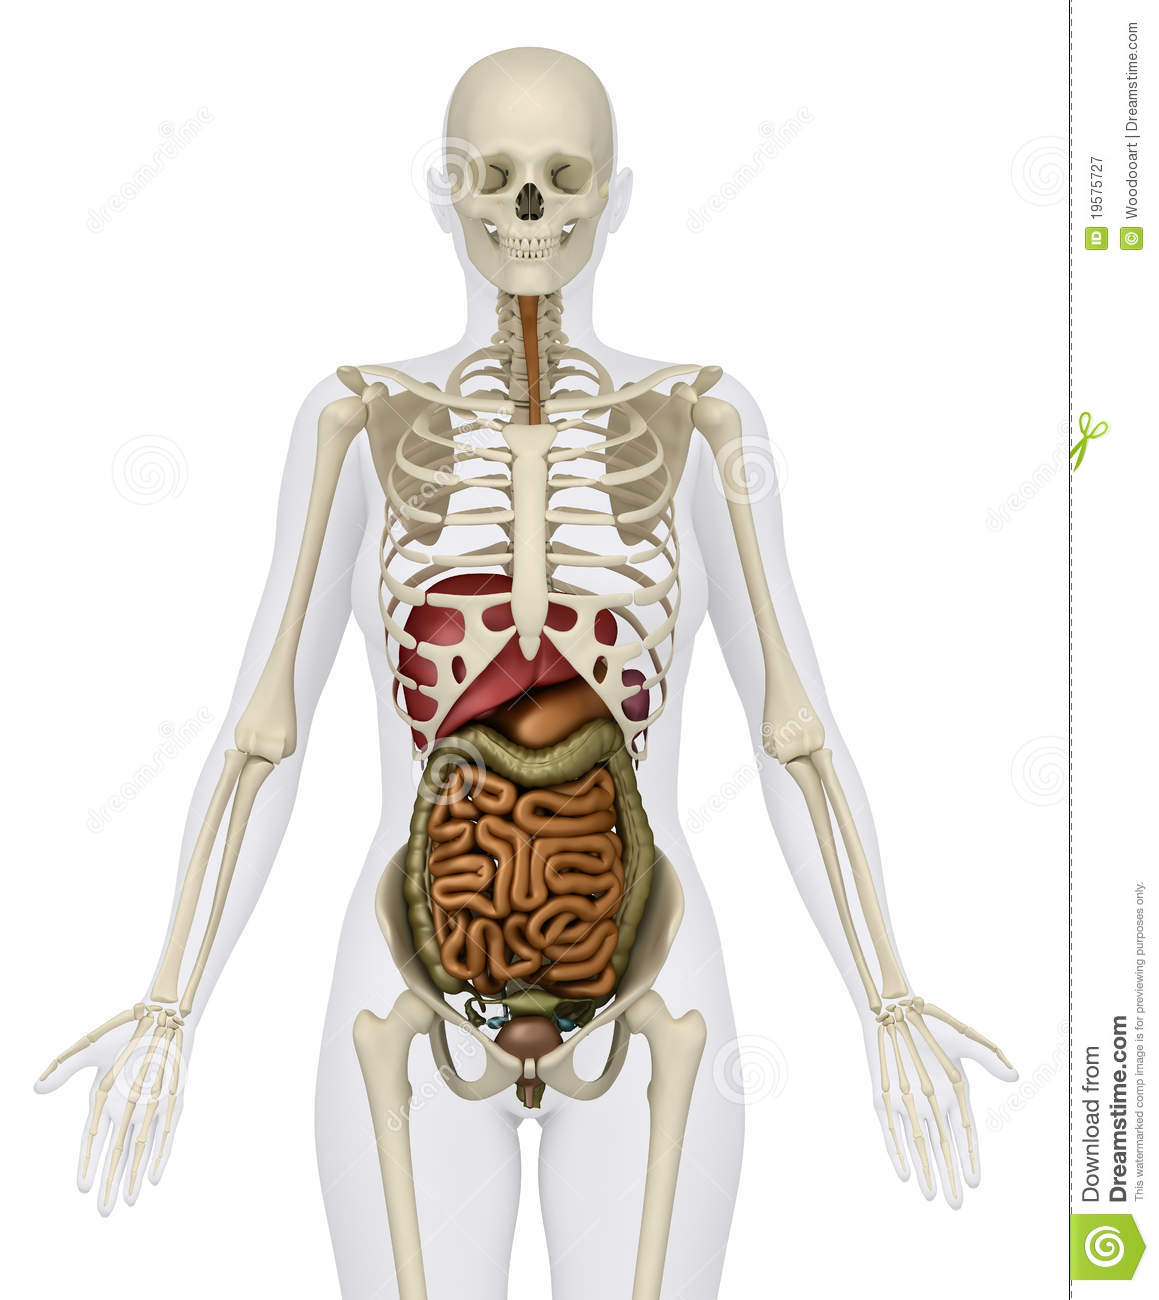 Female Abdominal Organs With Skeleton Royalty Free Stock ... |Female Stomach Organs